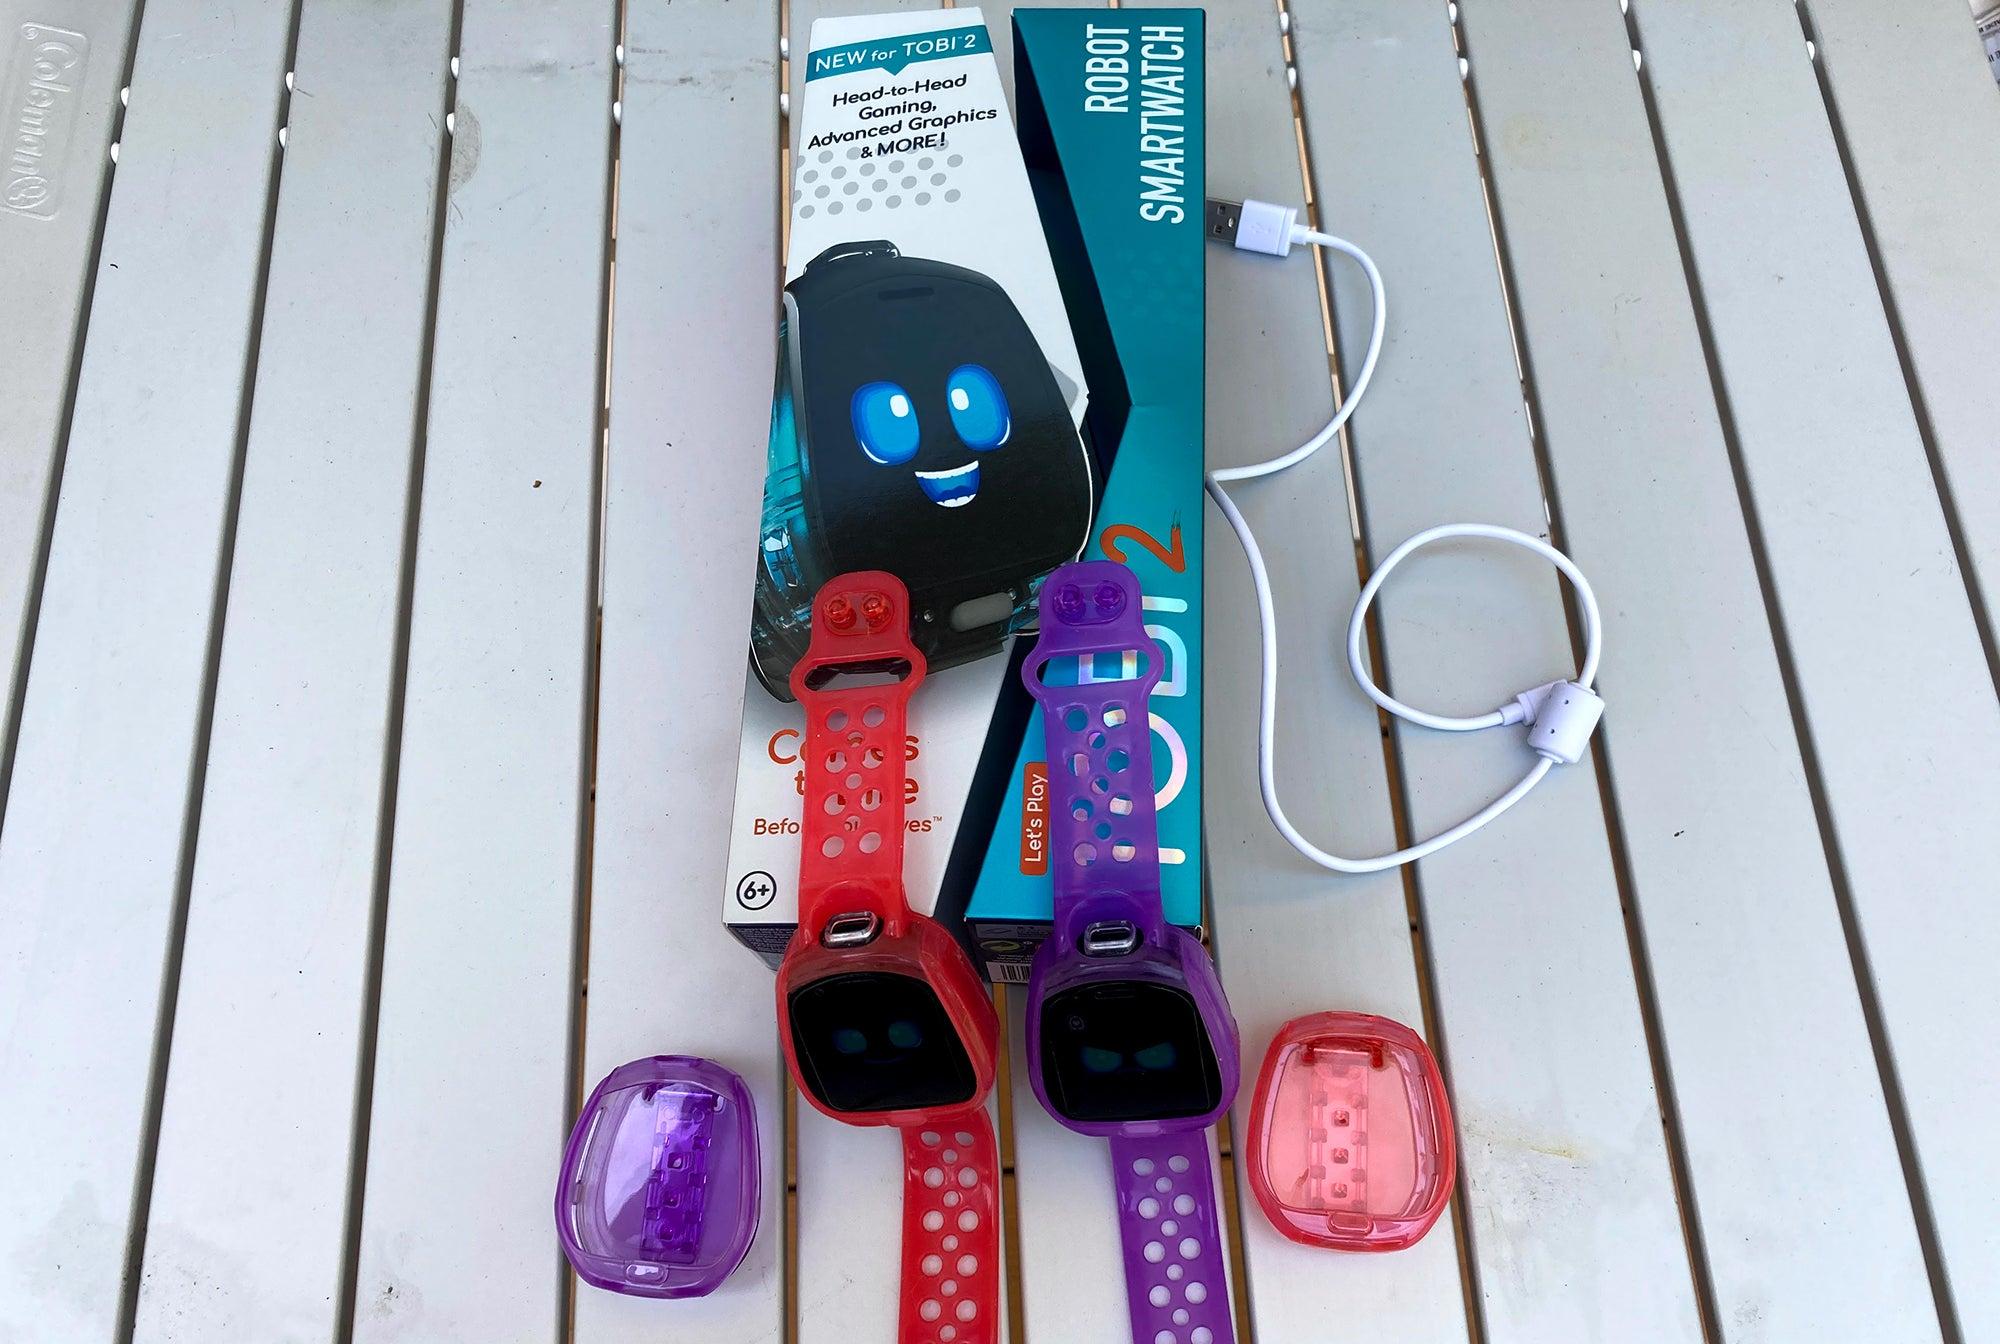 Tobi 2 Robot smartwatches with packaging